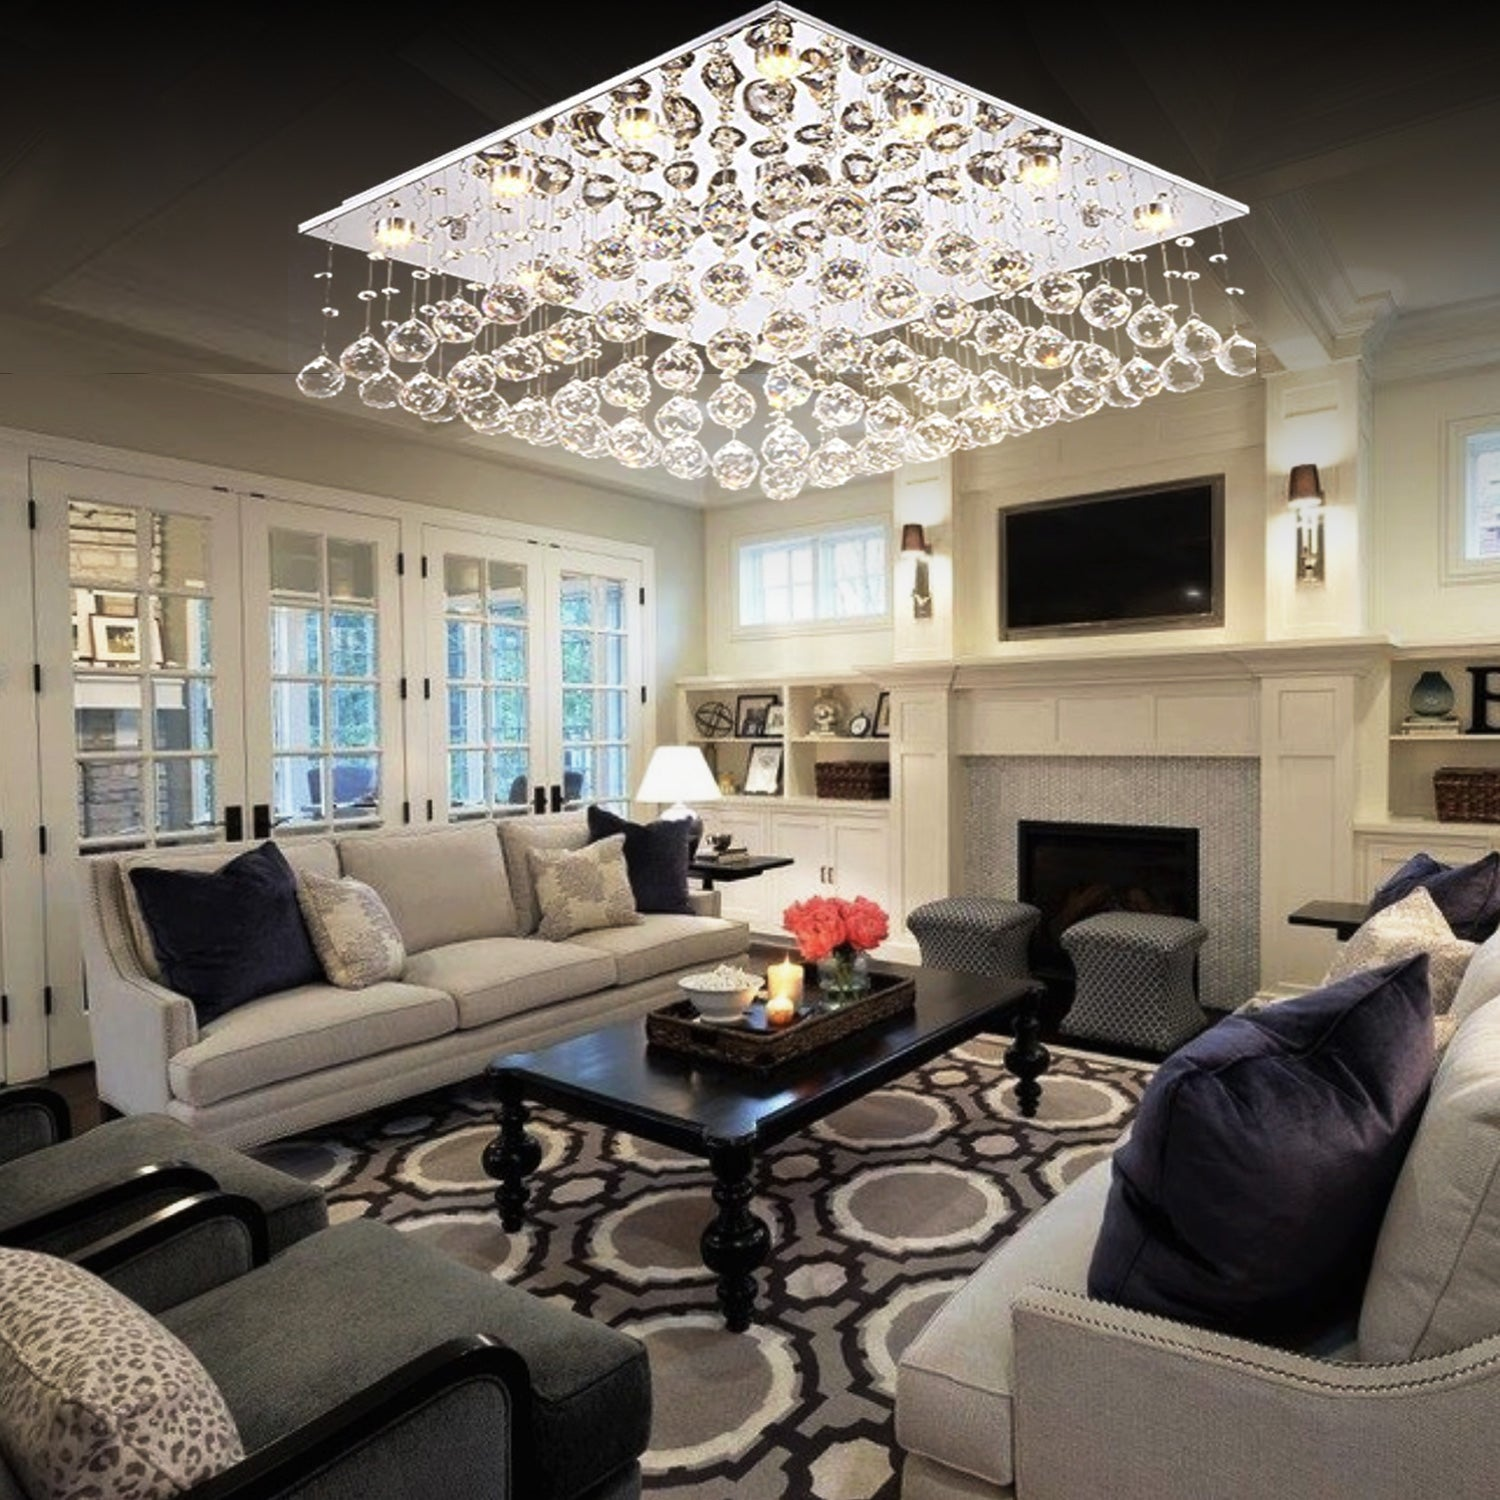 Square Raindrop Design Crystal Chandelier Living Room